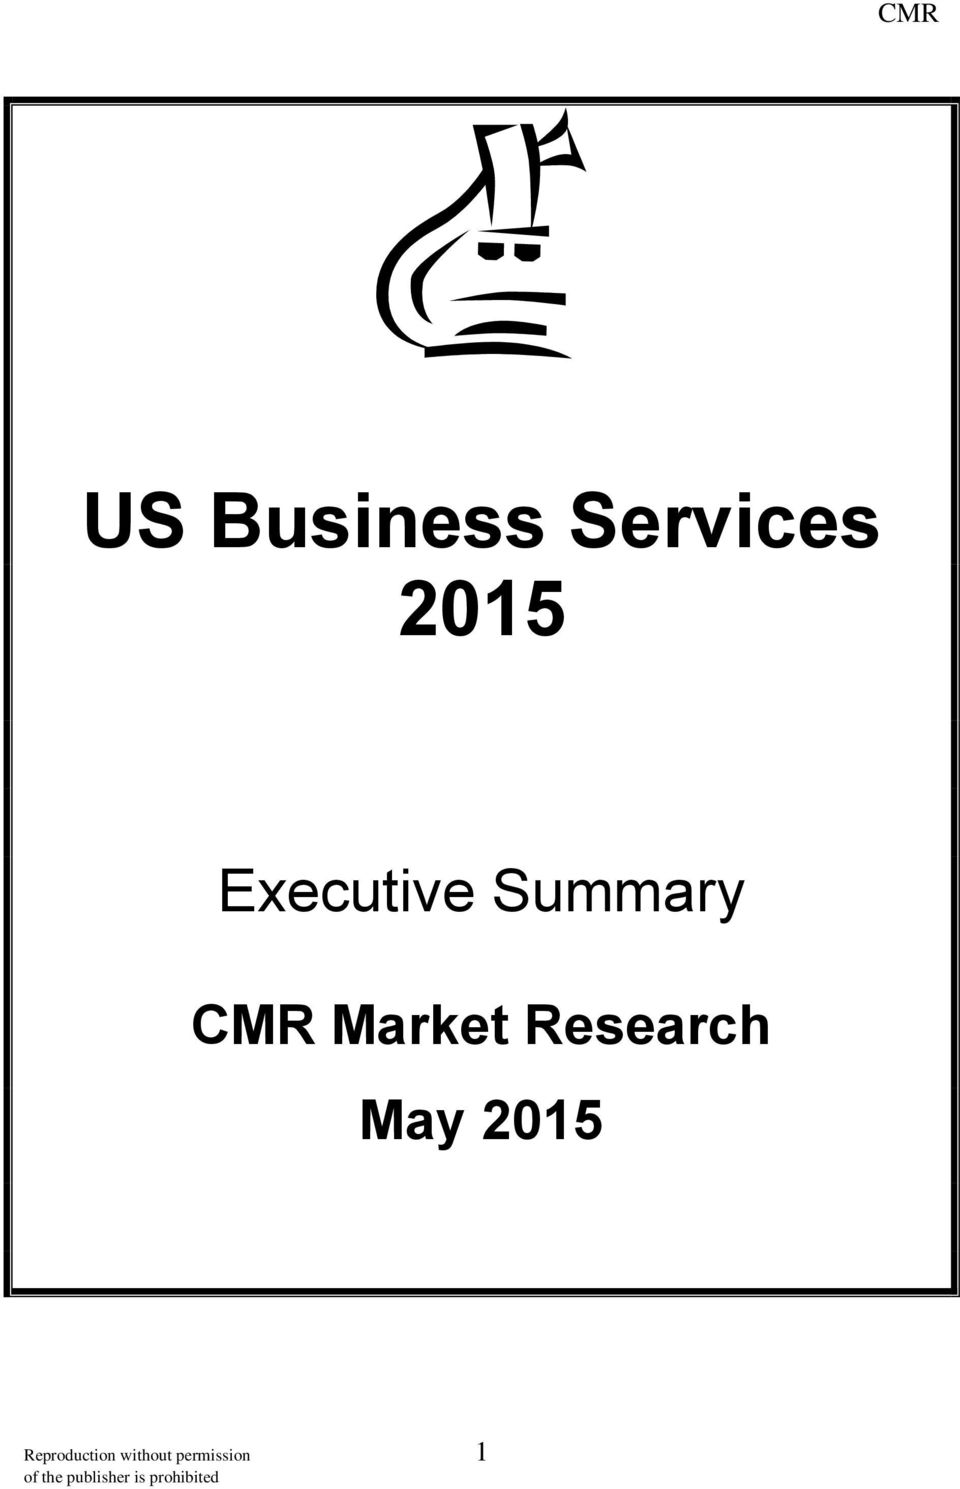 Market Research May 2015